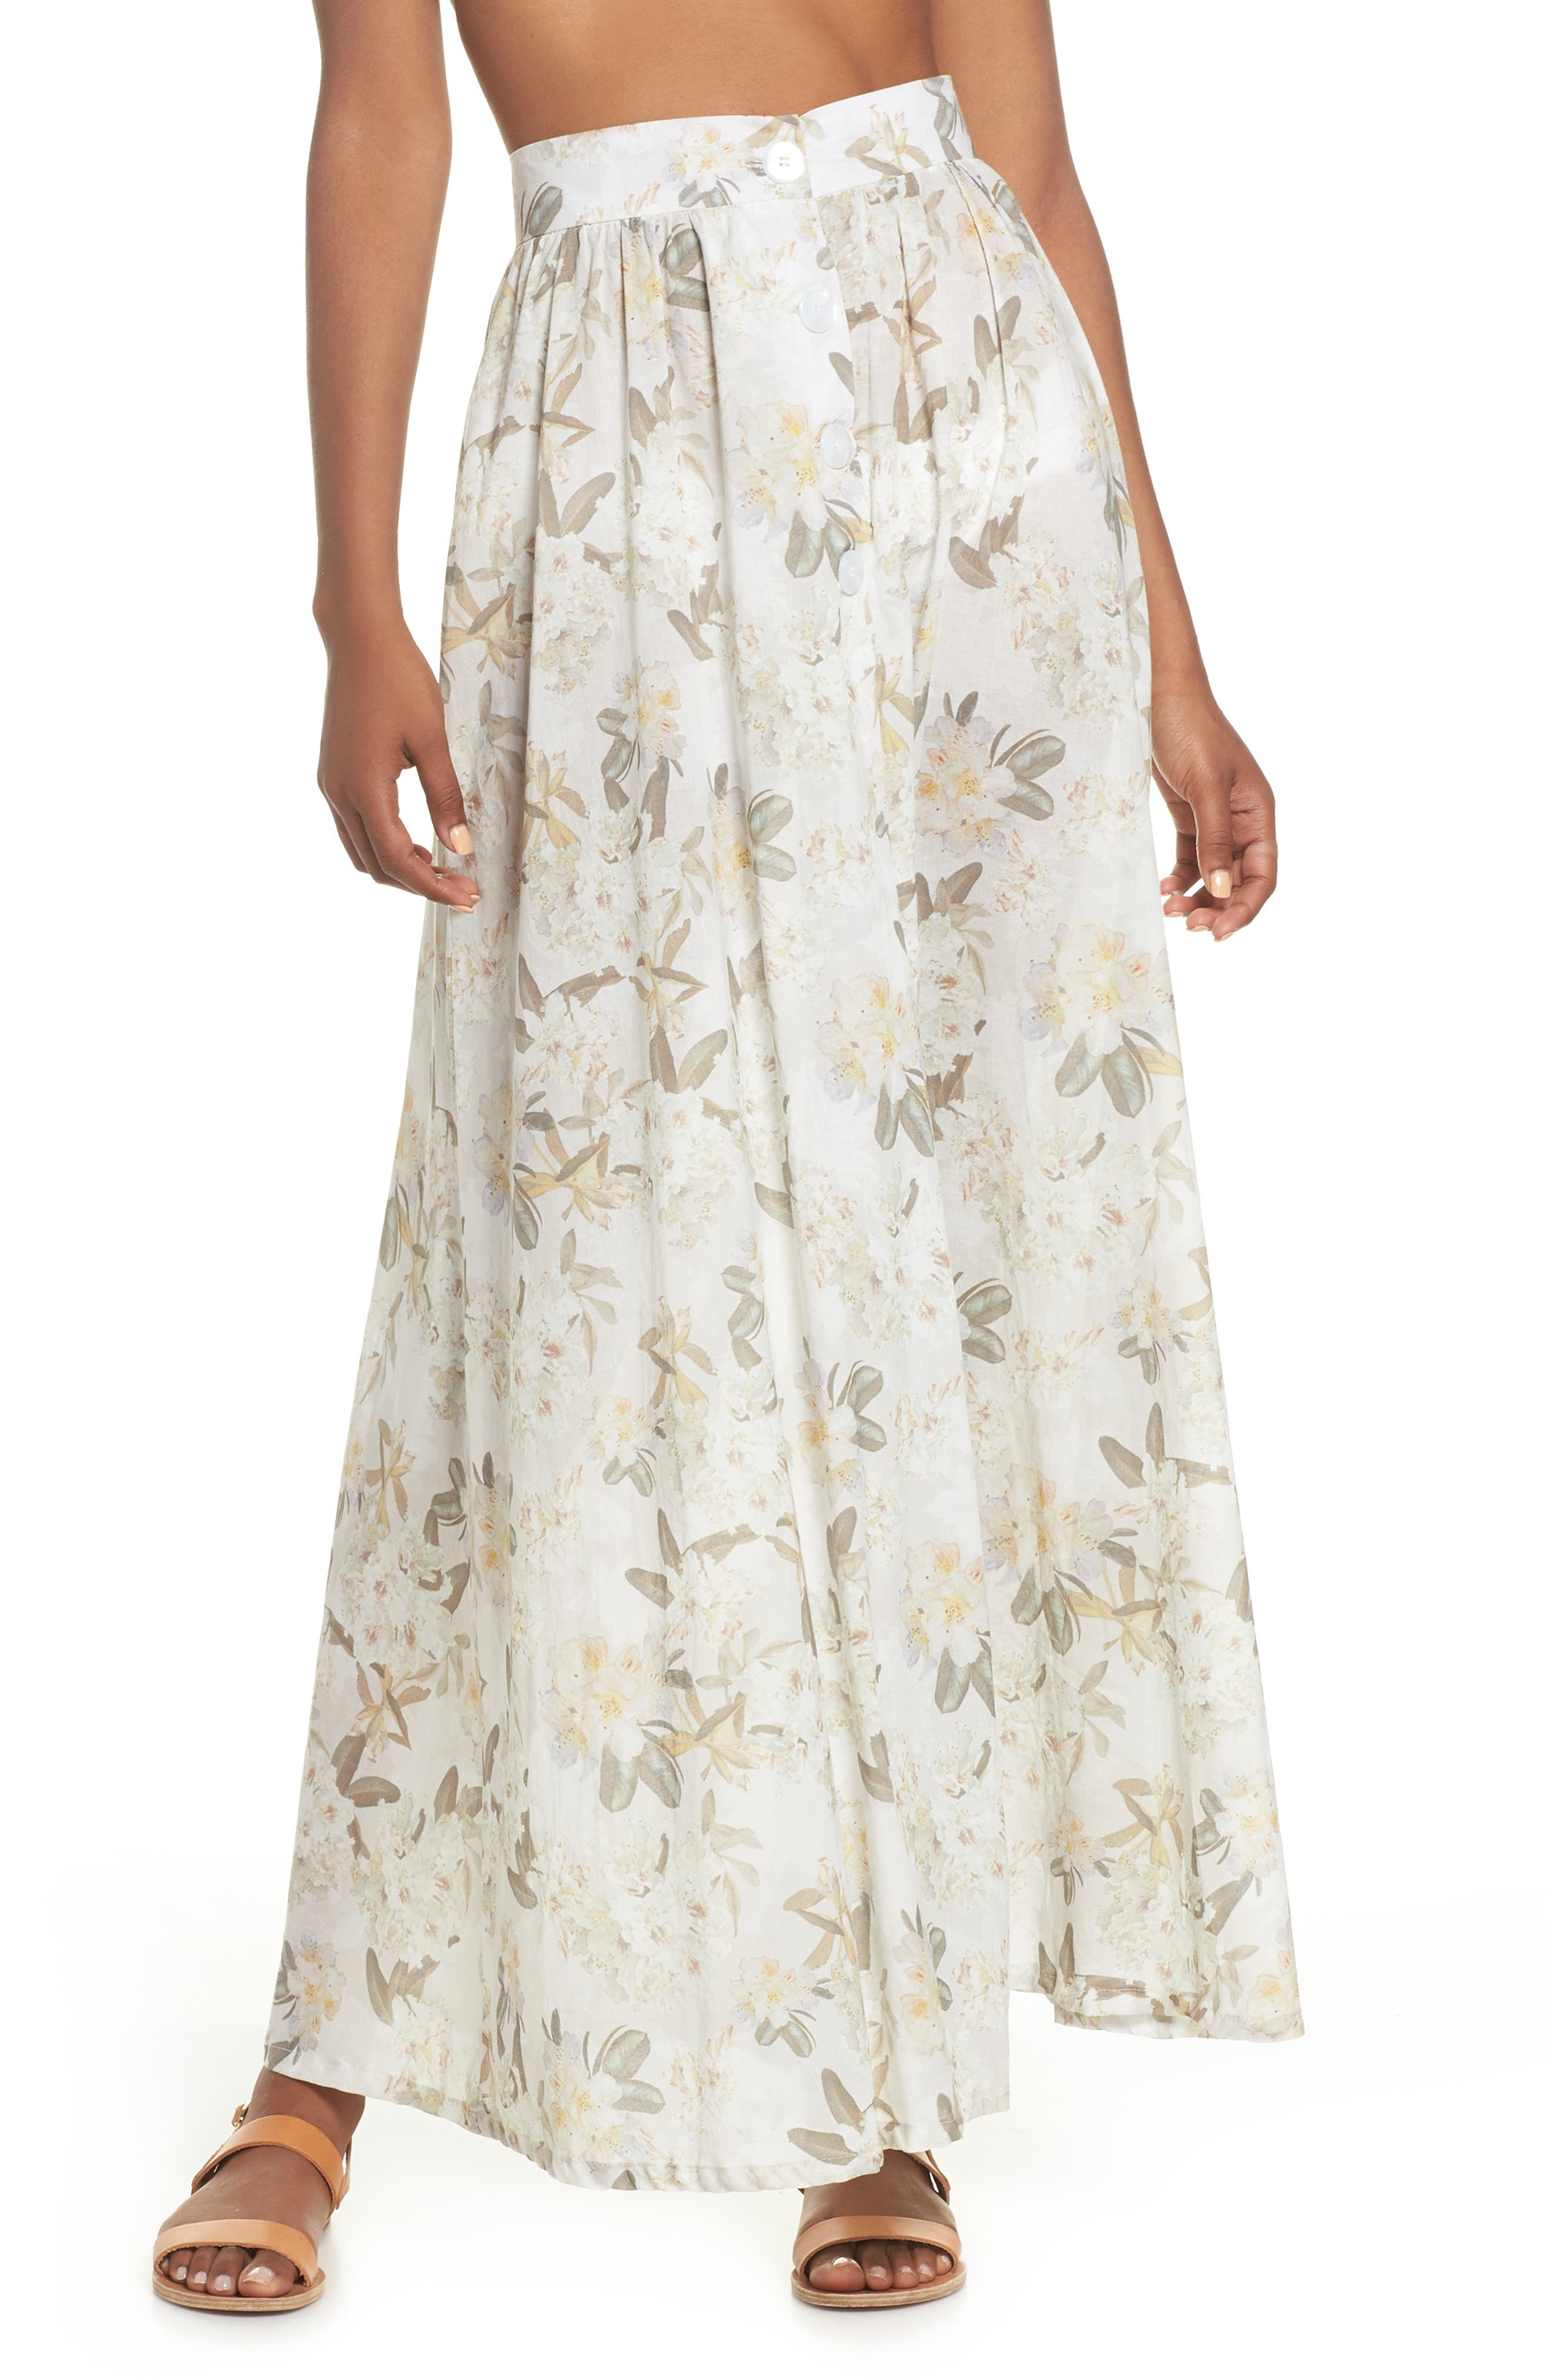 Edith Cover-Up Maxi Skirt,                         Main,                         color, Ete Floral White